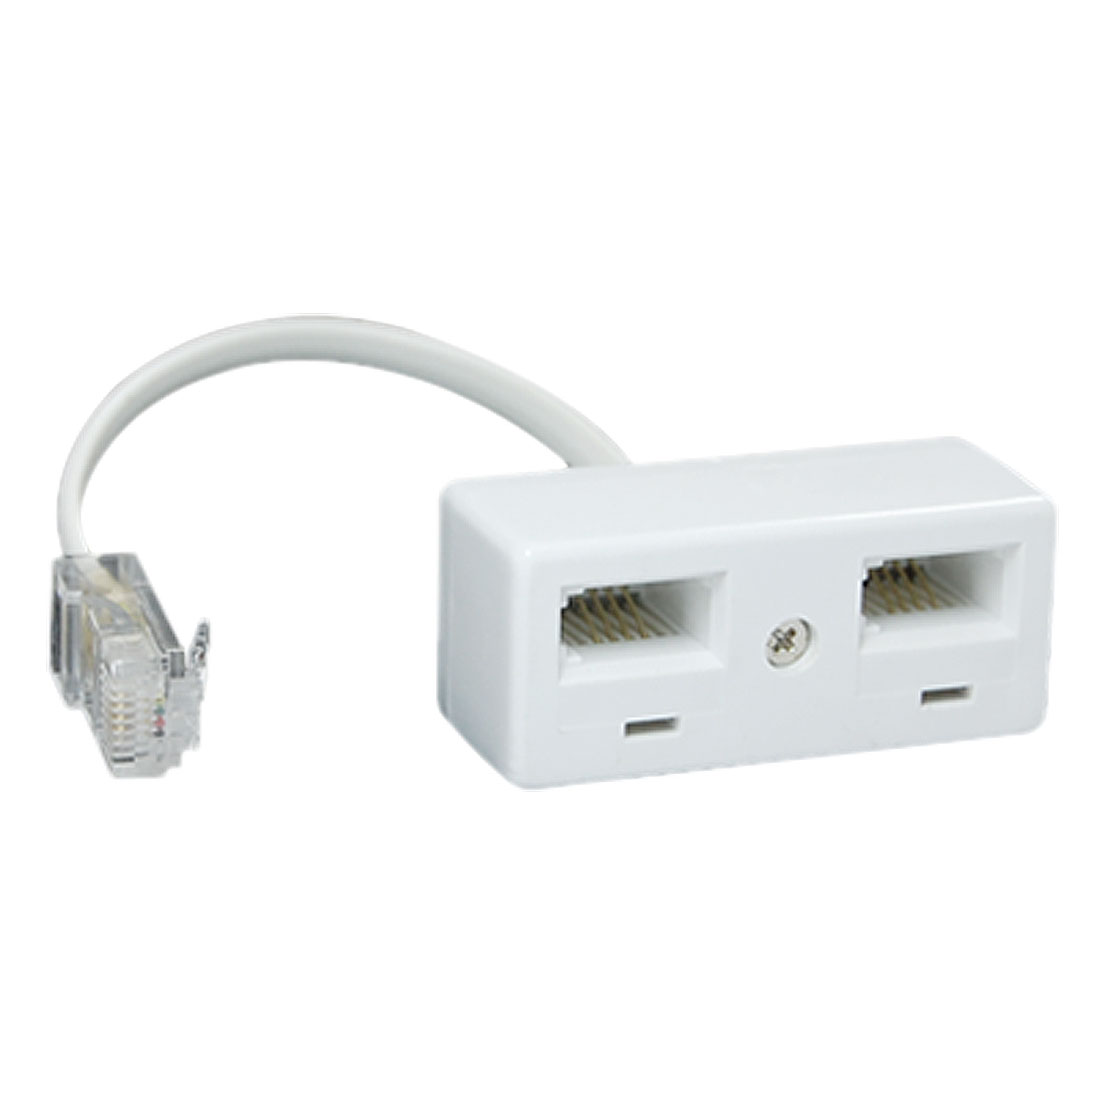 RJ45 to Dual BT Socket Secondary Telephone Adapter